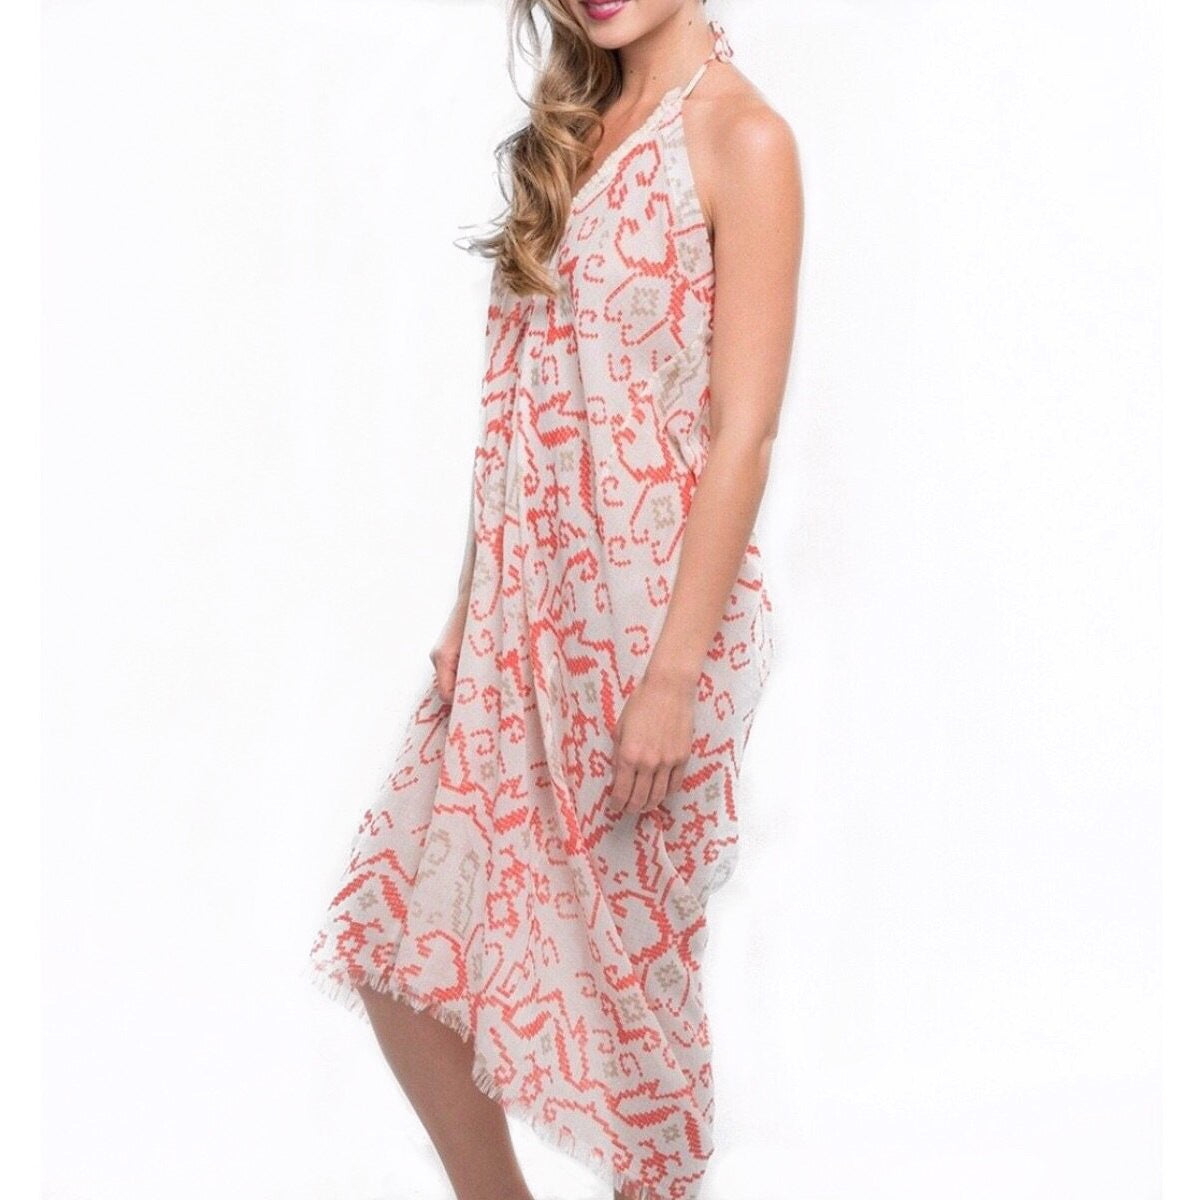 Sale ! Anastasia Ikat Halter Cover Up Dress in Faded Coral - Glamco Boutique